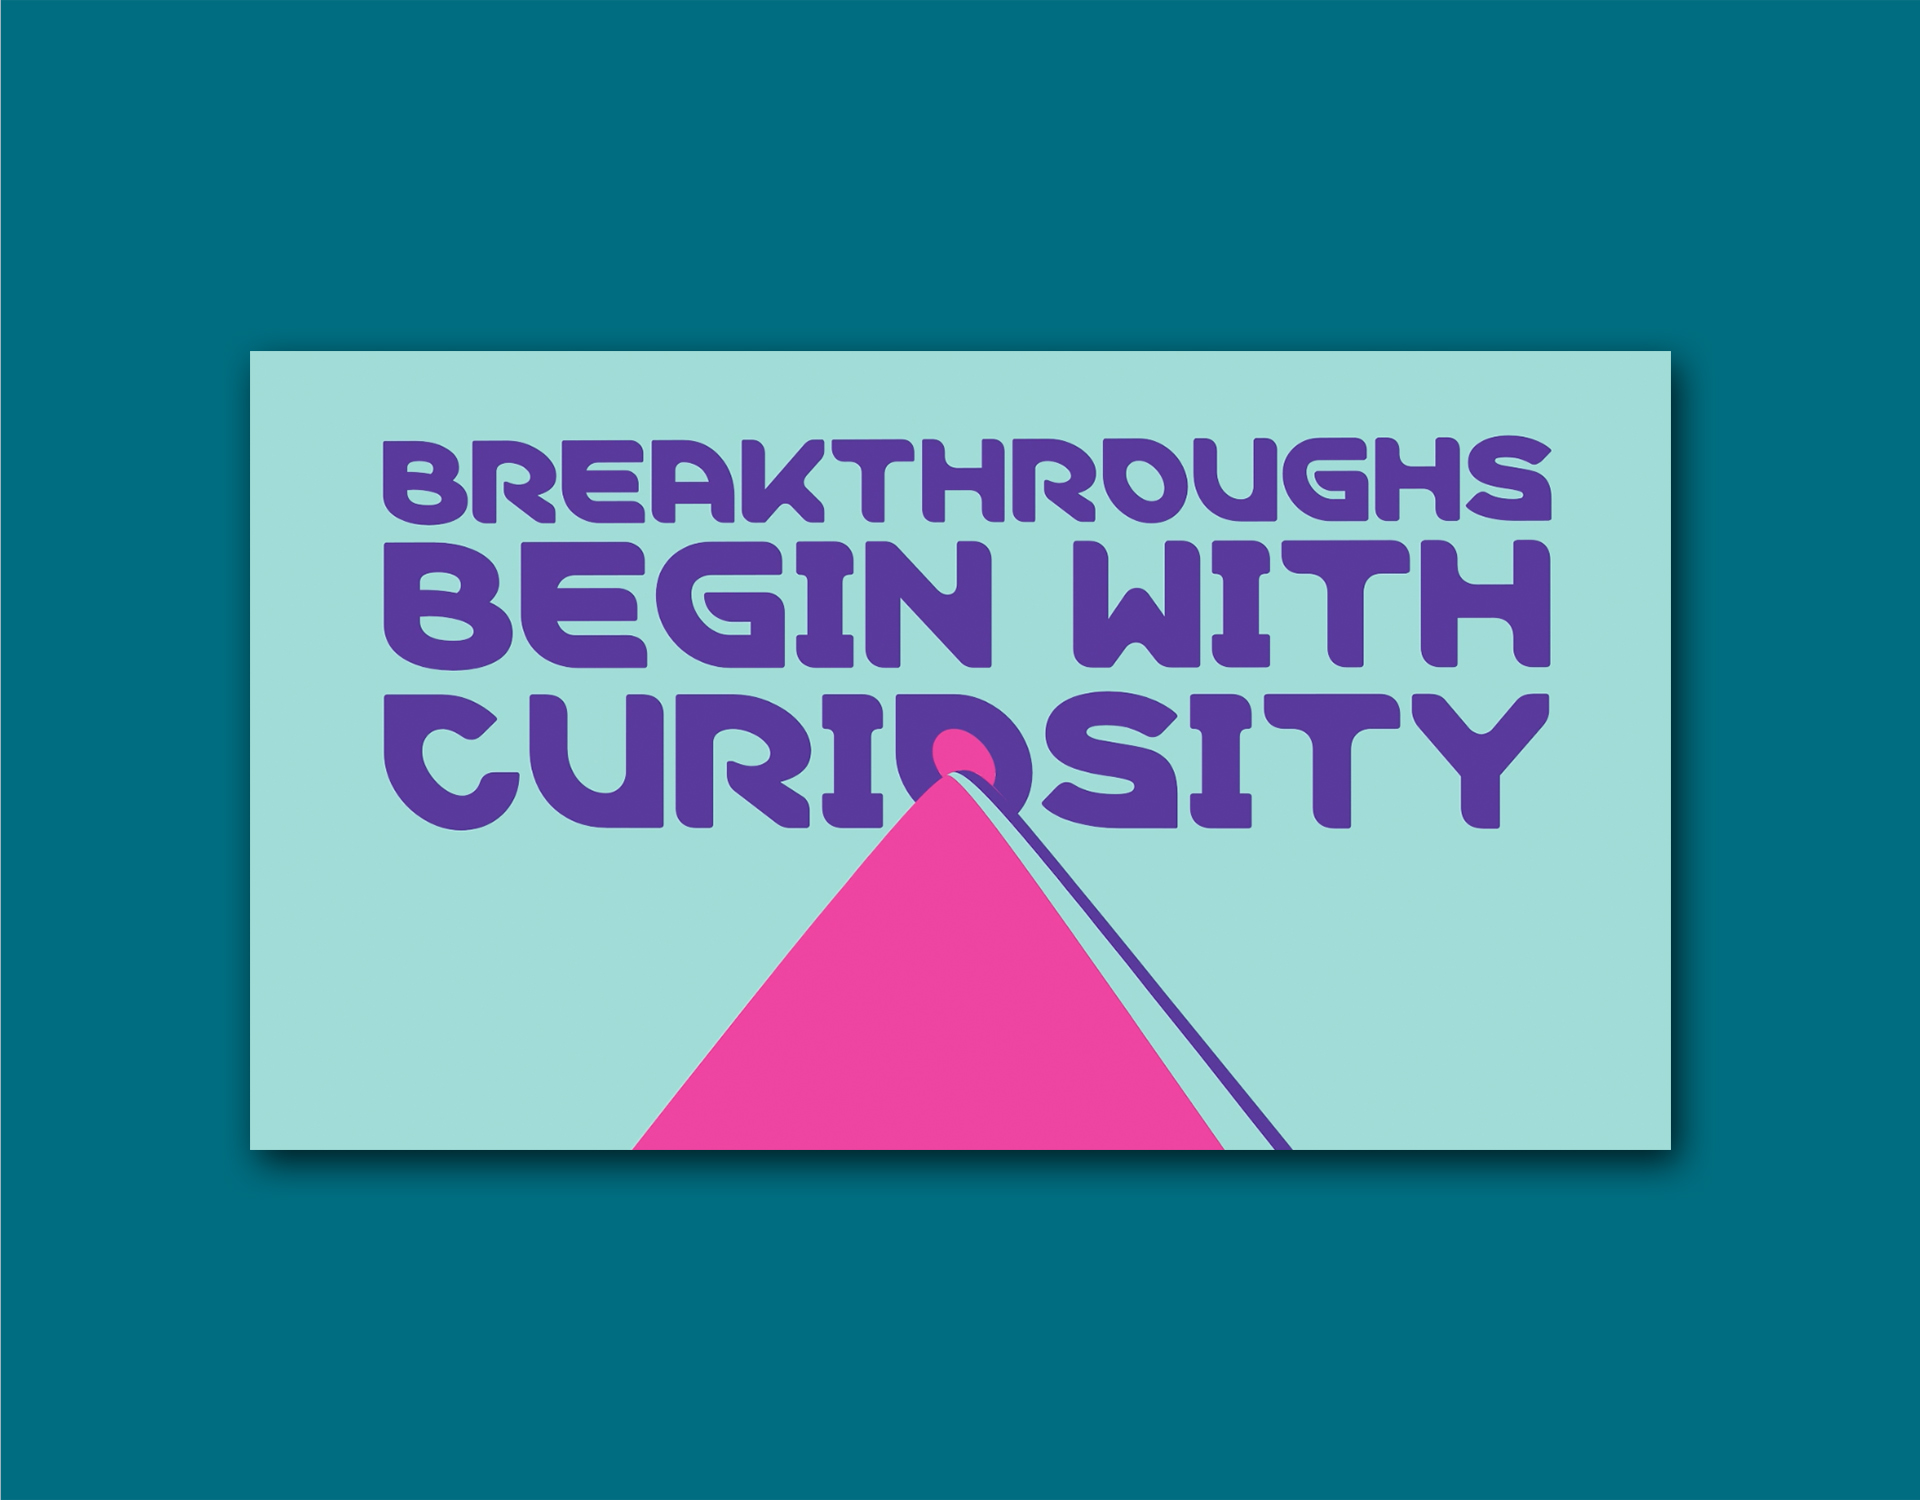 Merck – Why curiosity?